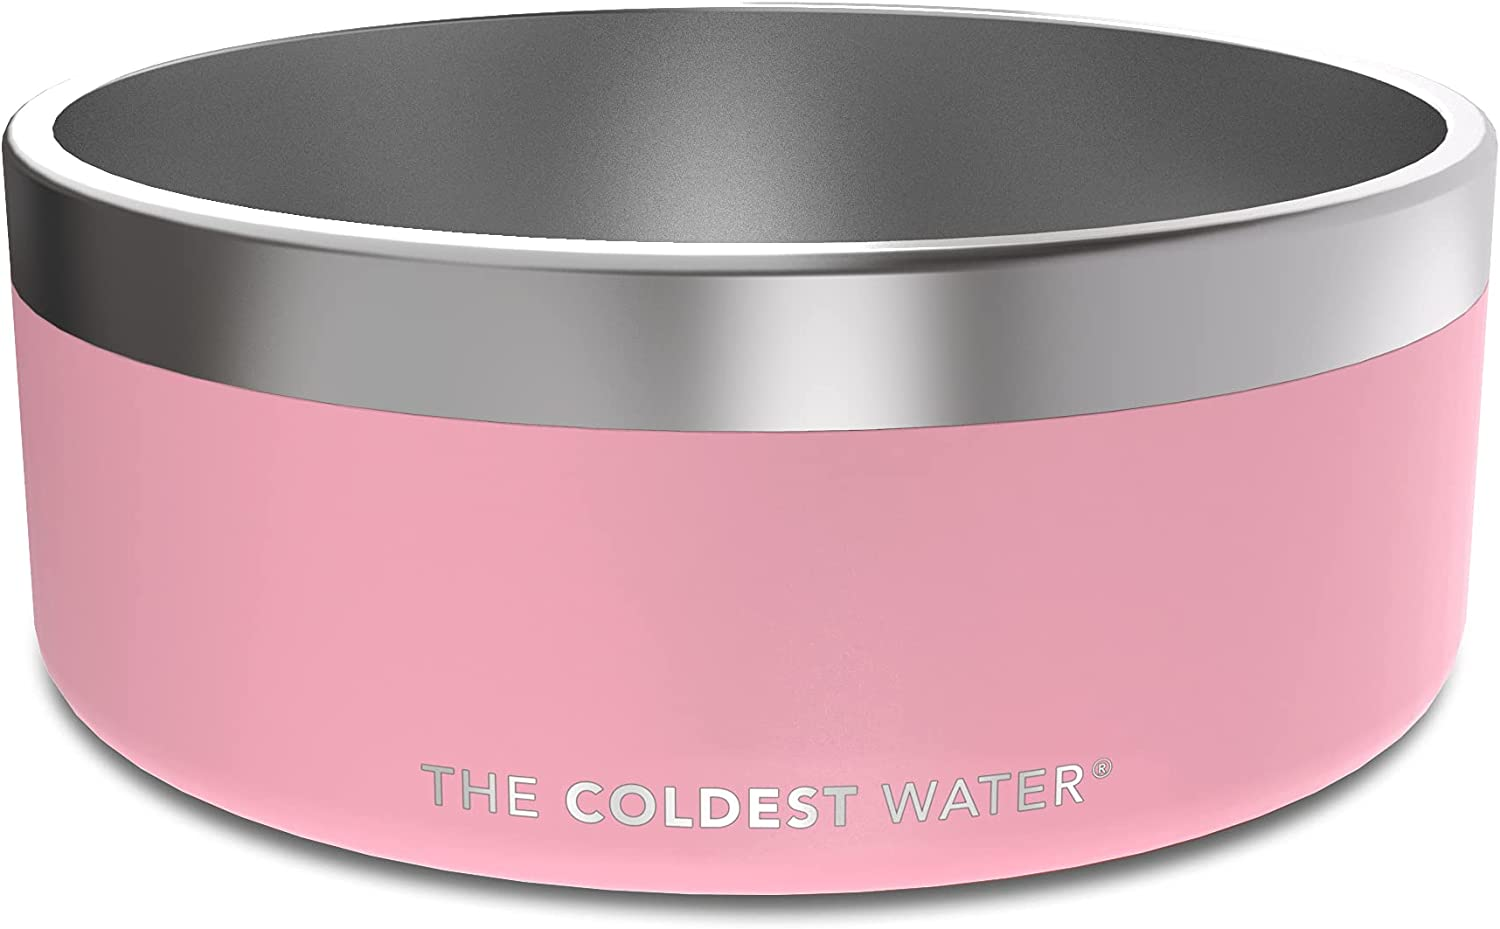 The Coldest Dog Bowl - Durable, Non-Skid, Stainless Steel, Double Wall, Heavy Duty with Rubber Bottom for Dogs, Cats, Pet Feeding (64 oz, Cotton Candy Pink)